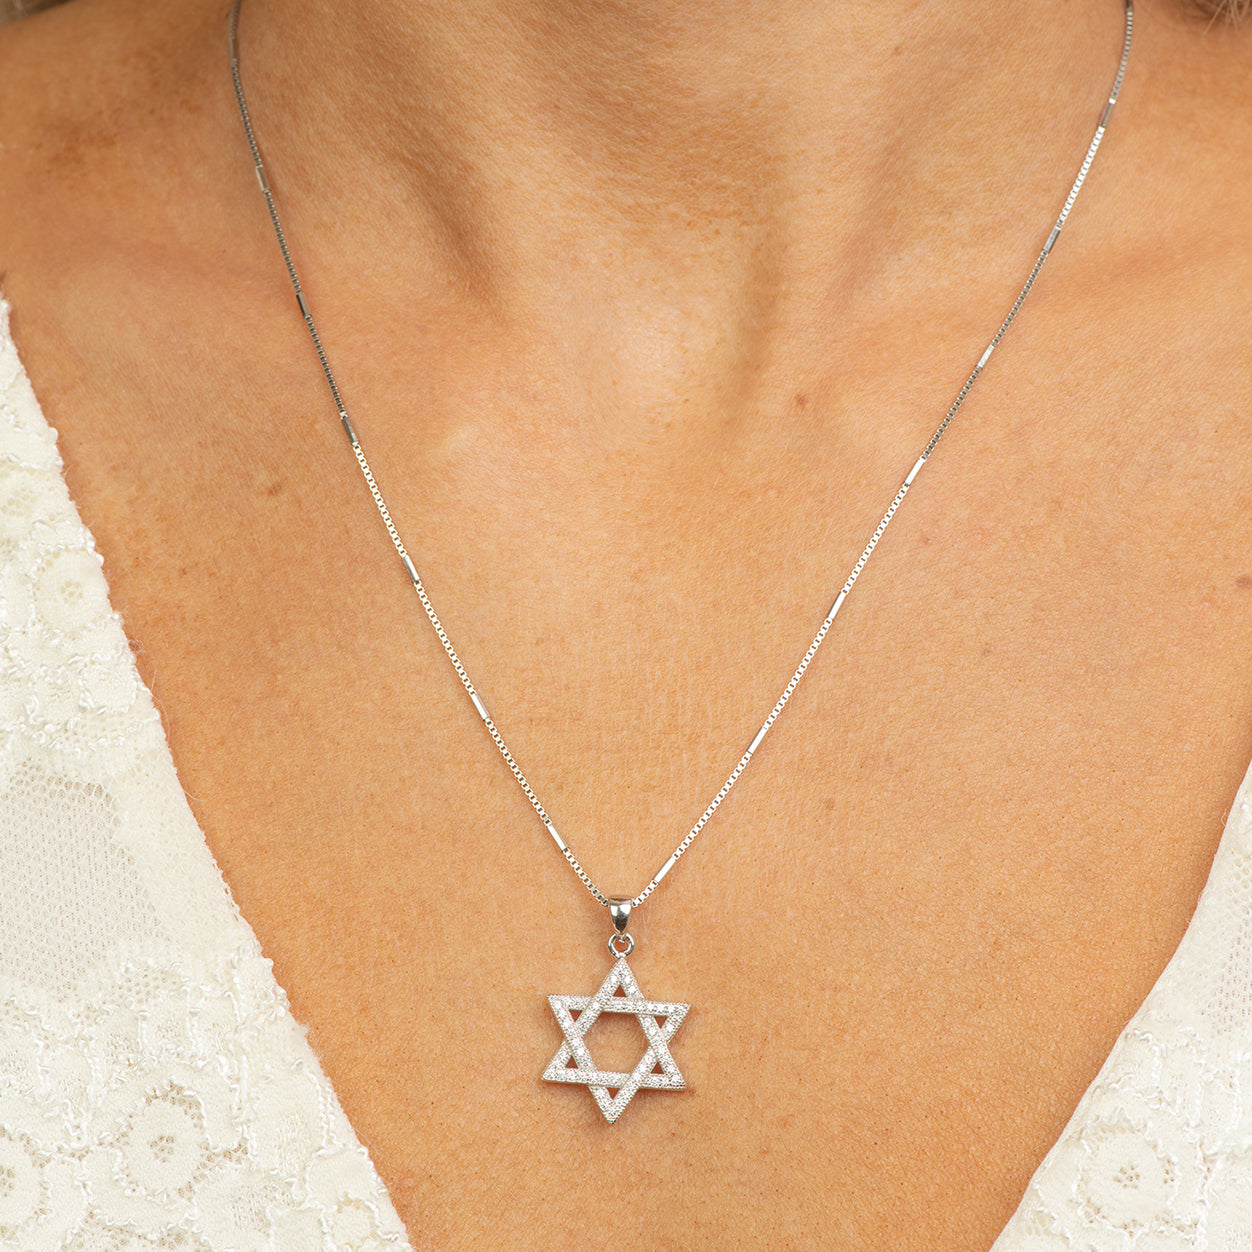 Star of David Necklace.